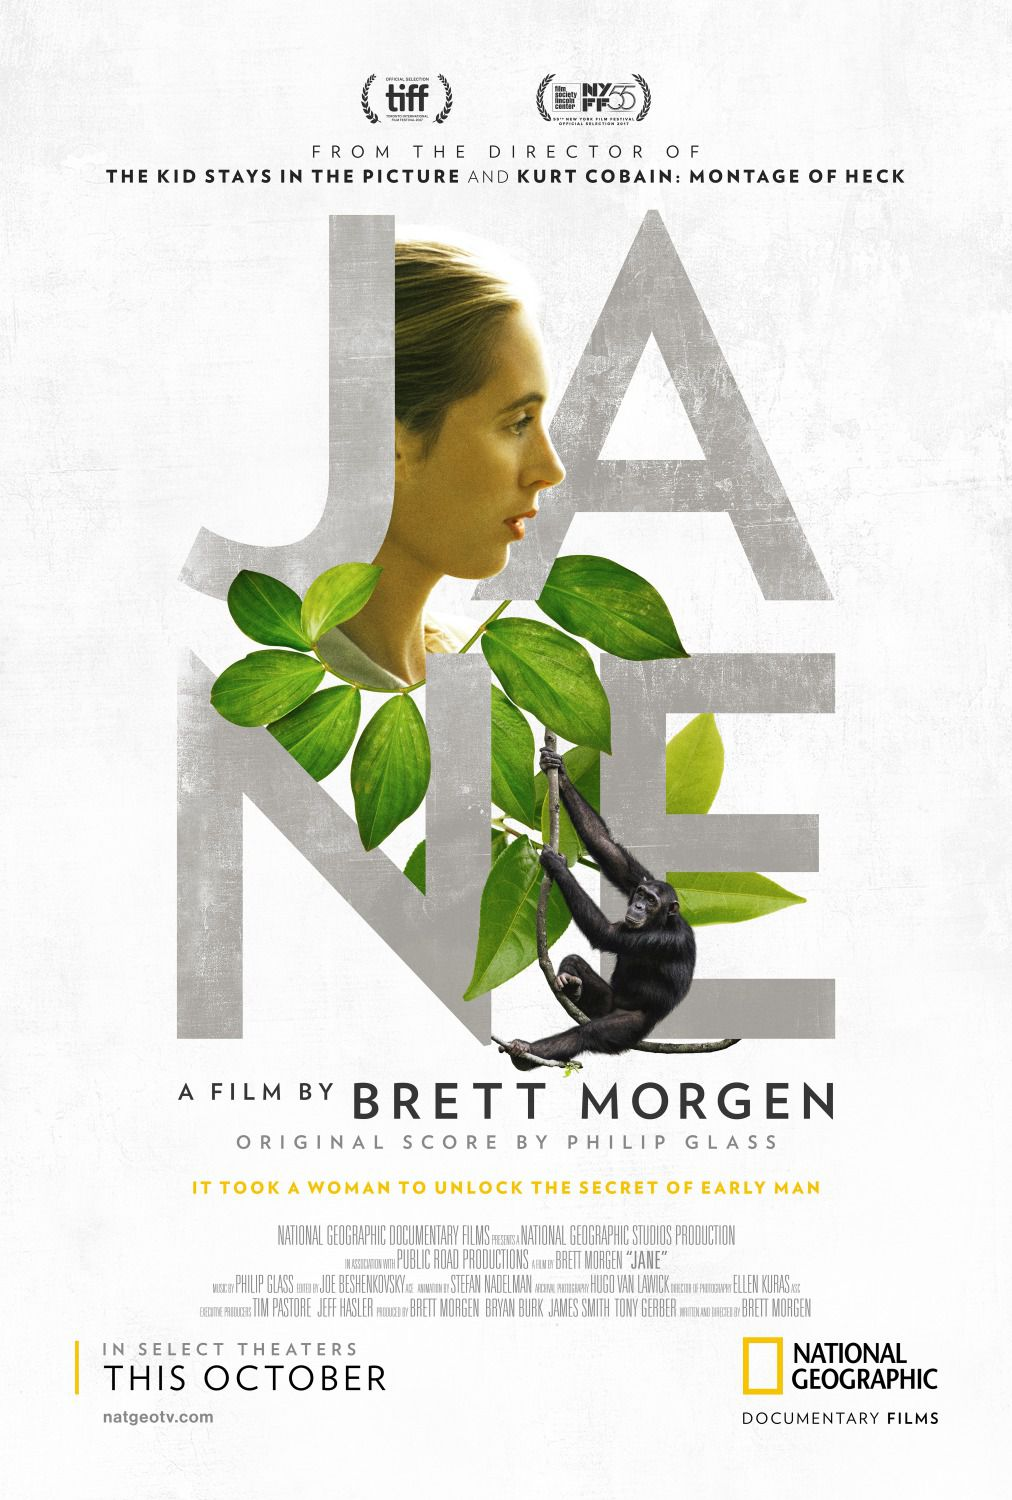 Jane - it took a woman to unlock the secret of early man - film by Brett Morgen